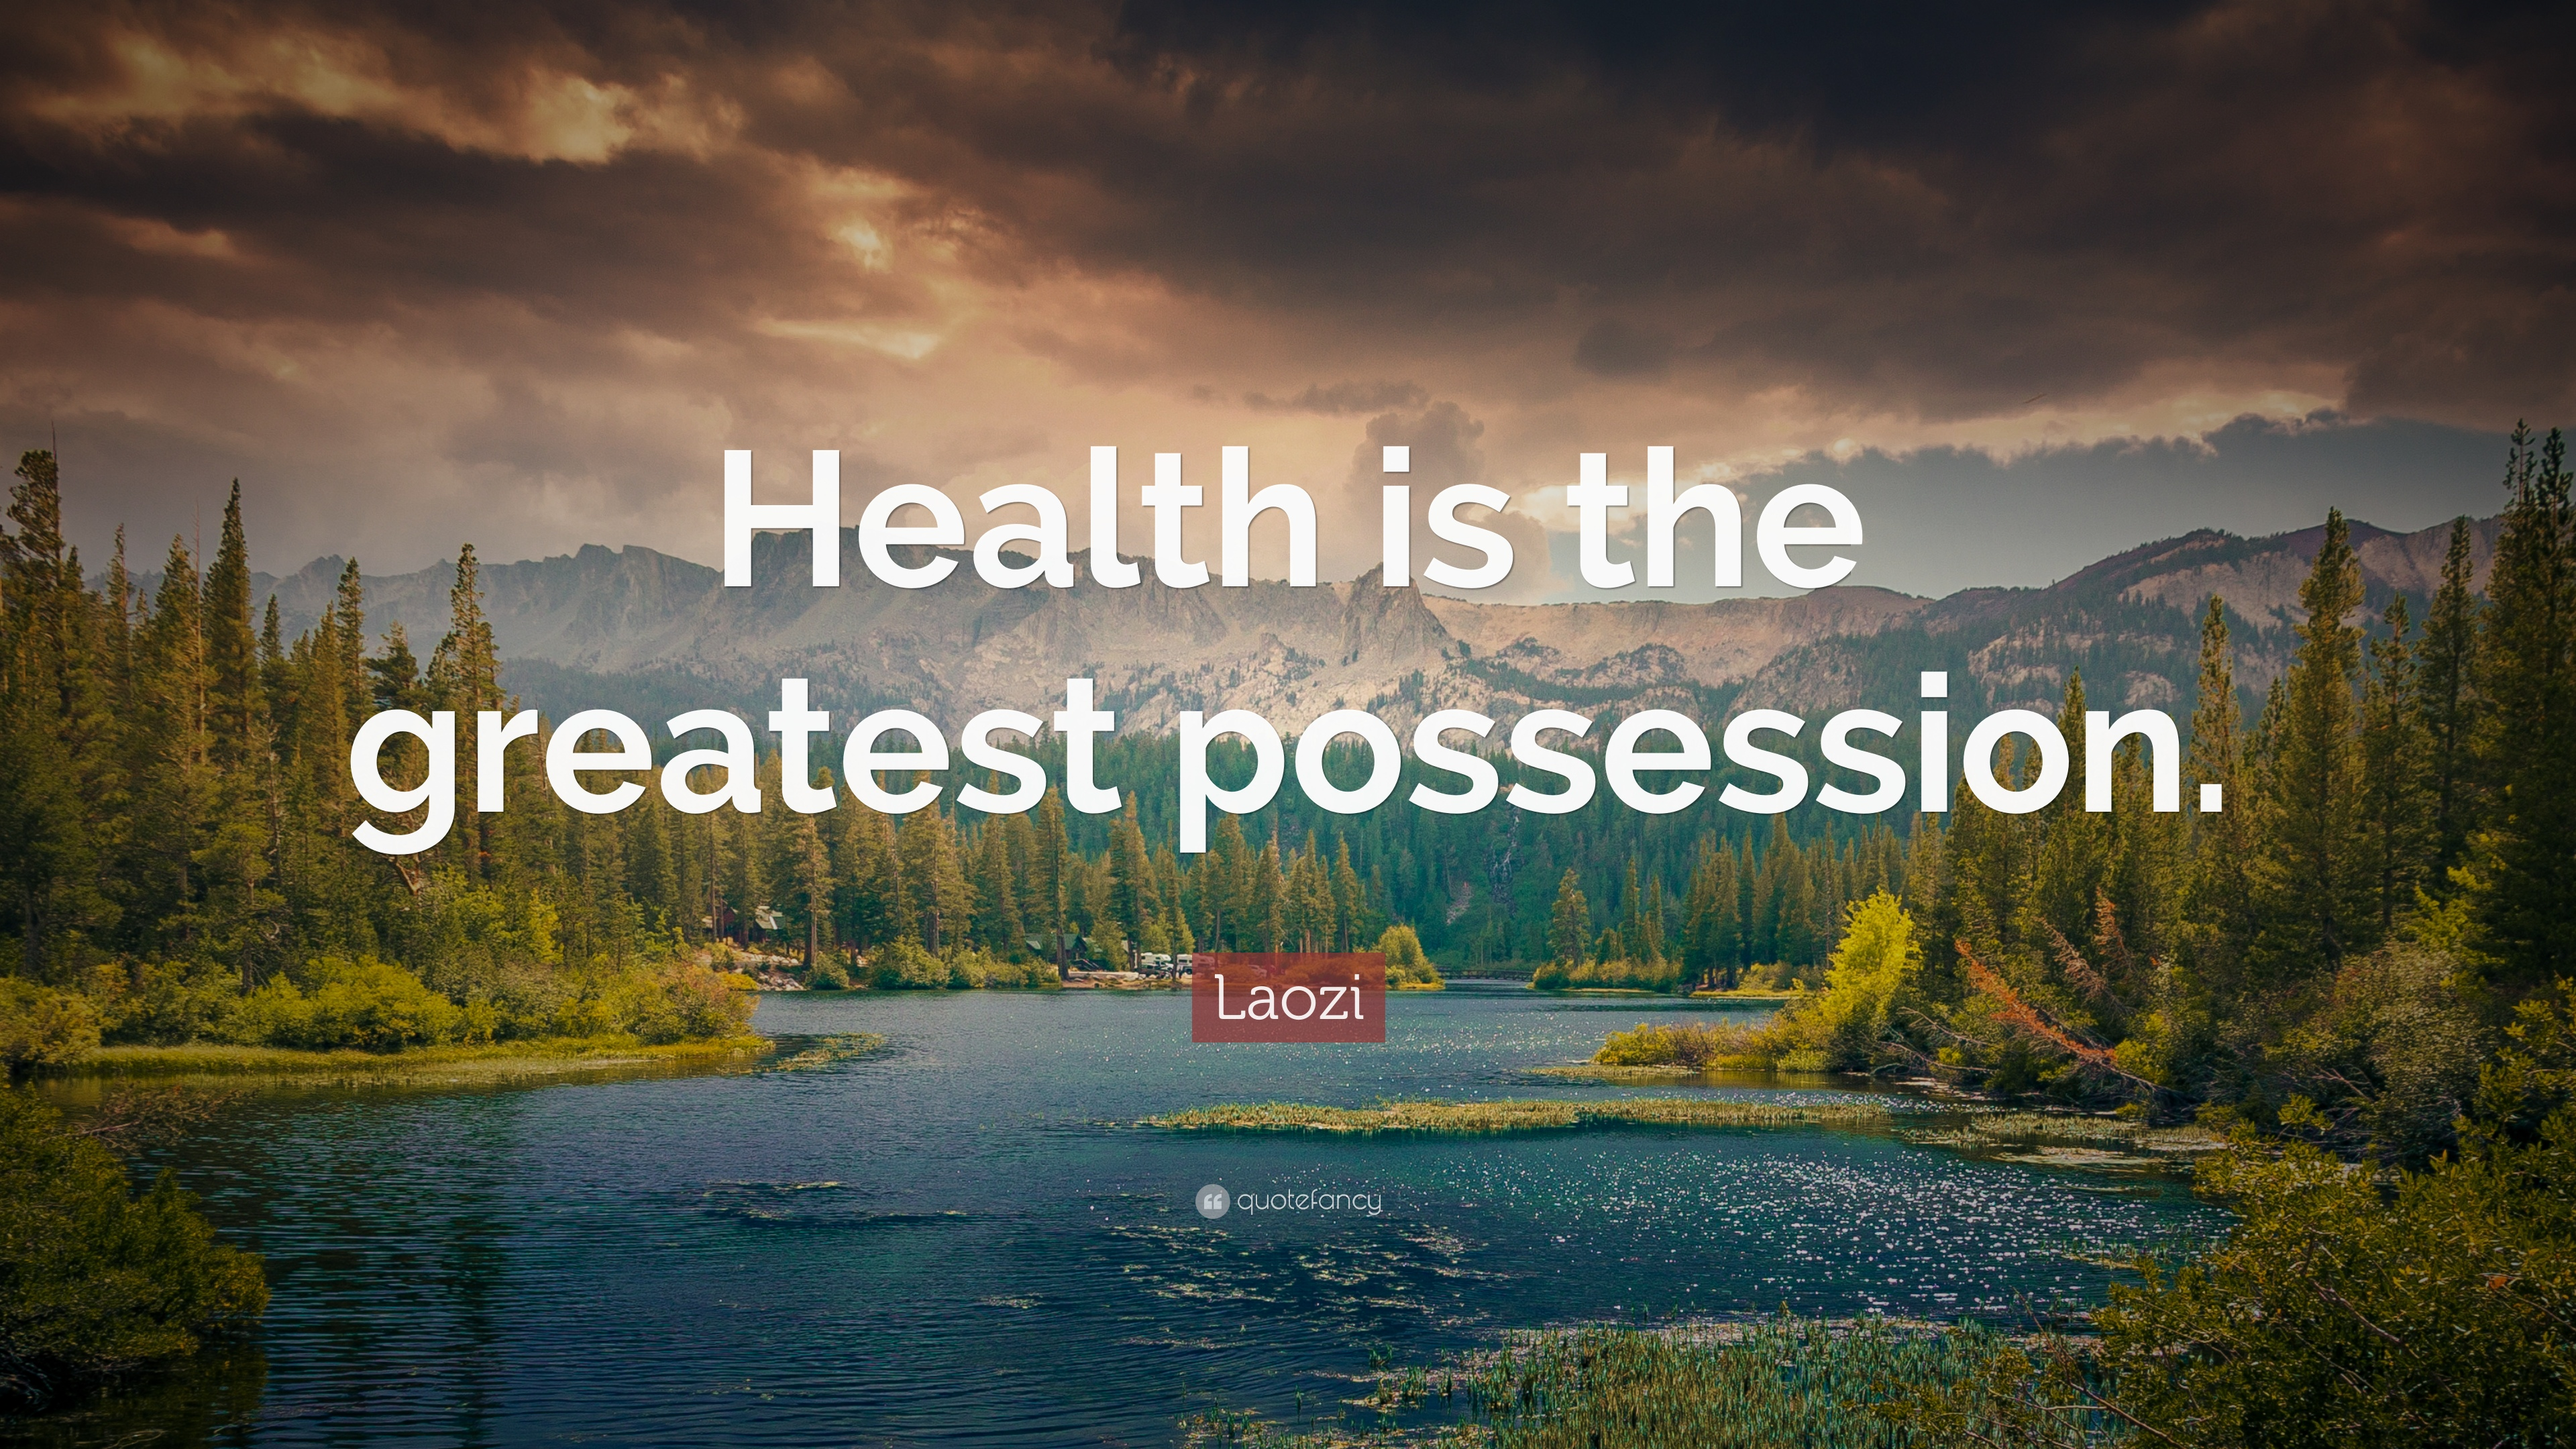 Quotes On Health Captivating Health Quotes 40 Wallpapers  Quotefancy